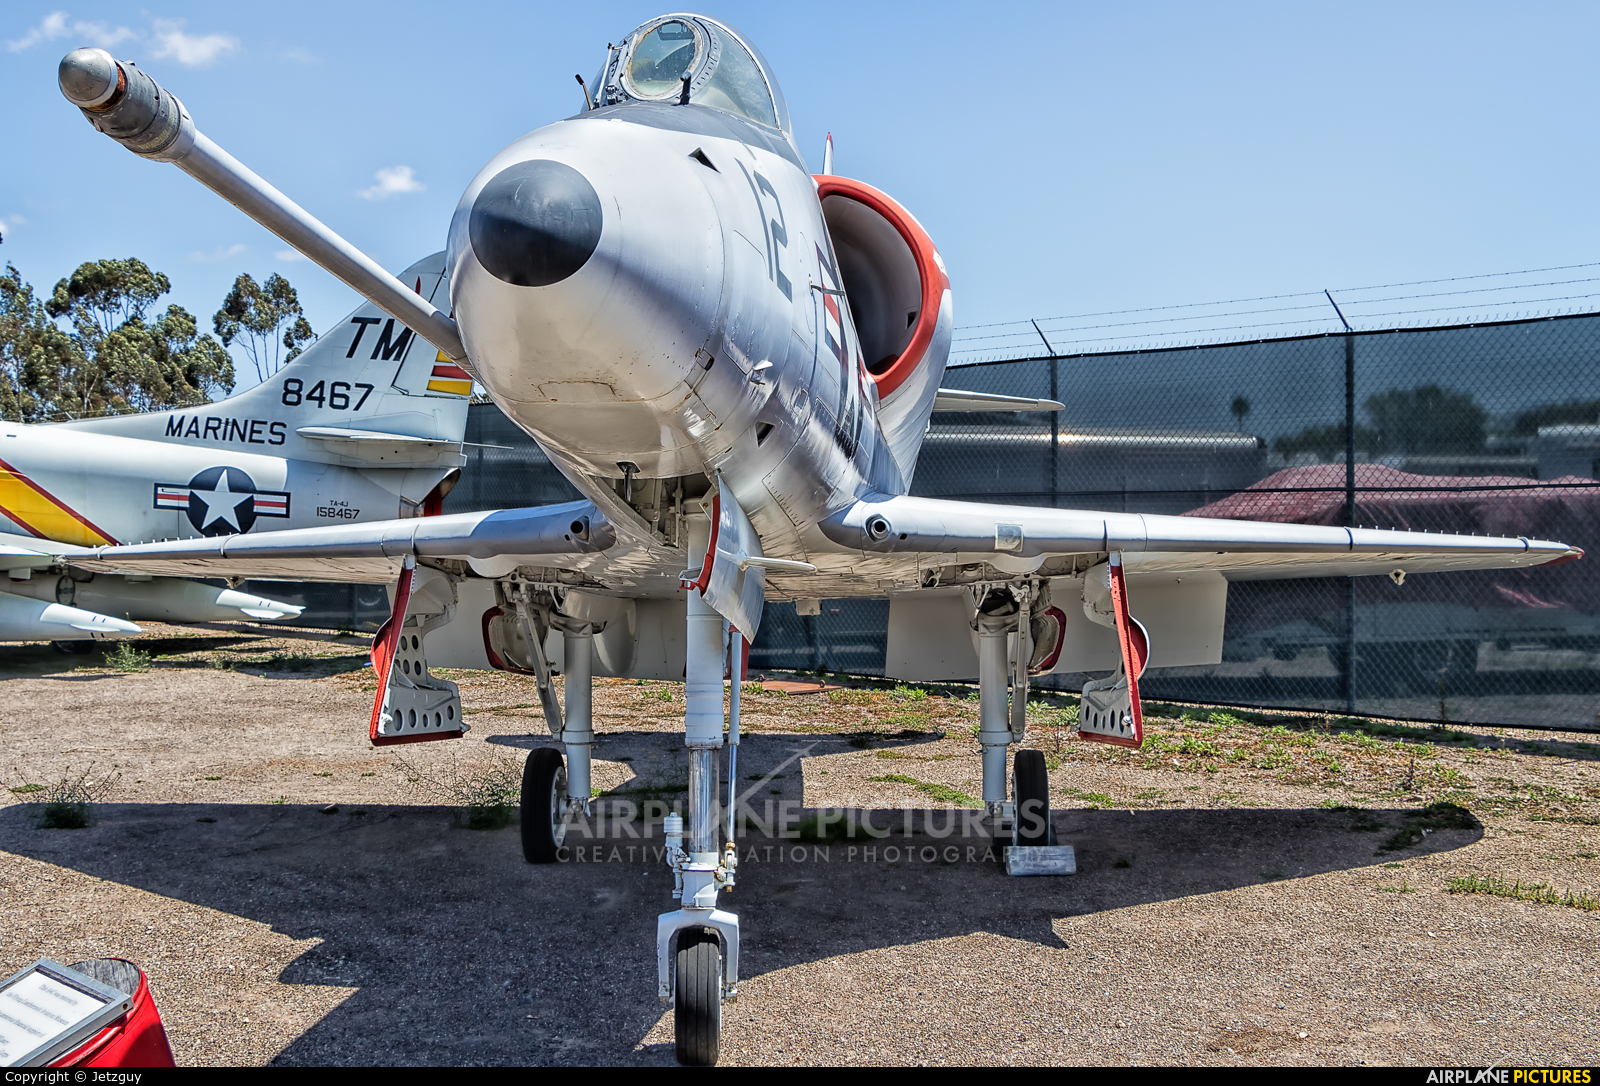 USA - Marine Corps 148492 aircraft at Miramar MCAS - Flying Leatherneck Aviation Museum